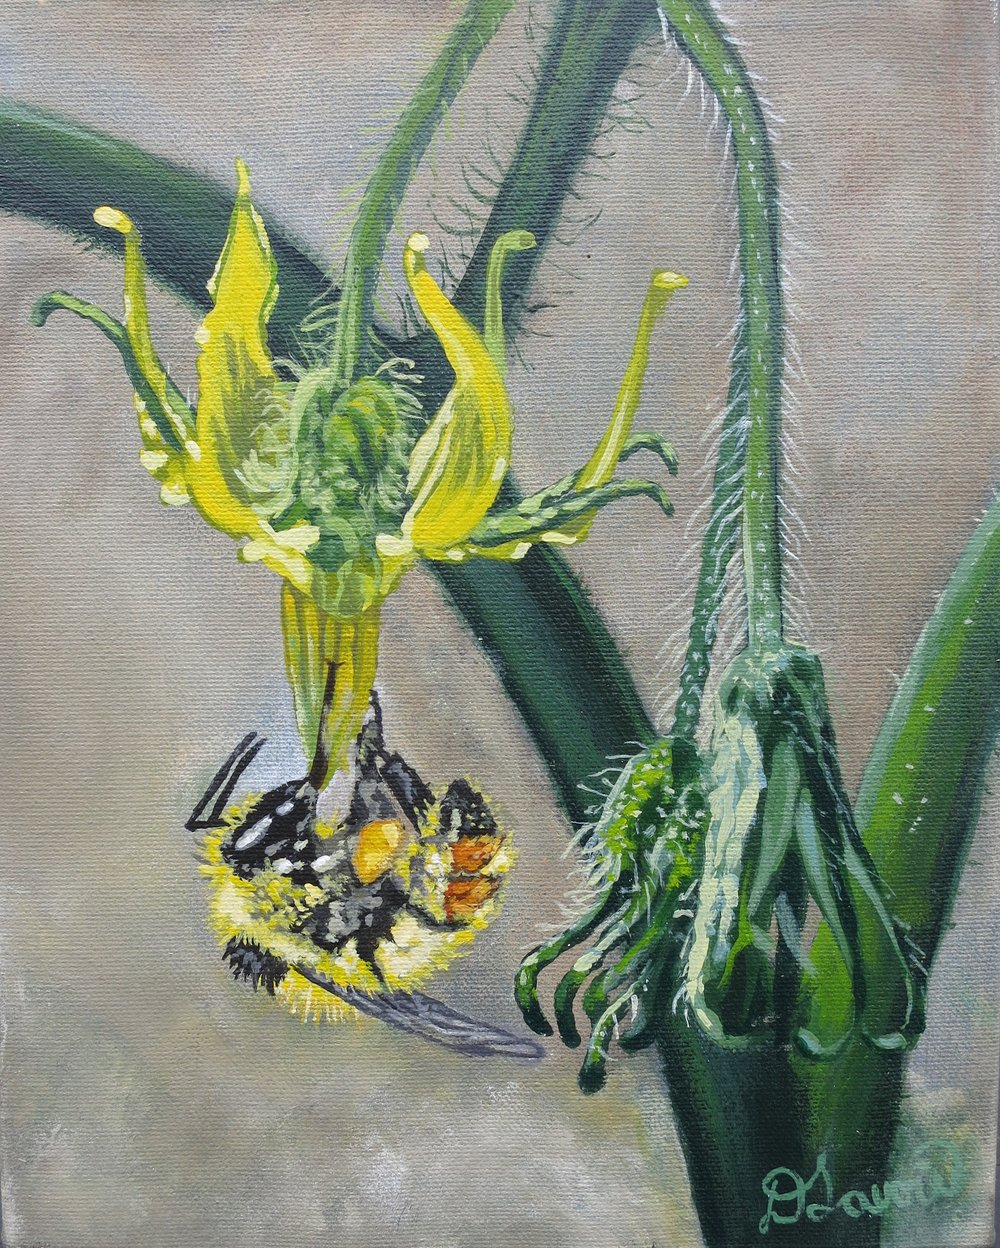 "Come to My Garden         Acrylic on Canvas - 8"" x 10""   Although the original has sold -  limited edition prints are available.   As this bee clung dangling from the flower on my tomato plant, he seemed the poster bee for my garden pollination."